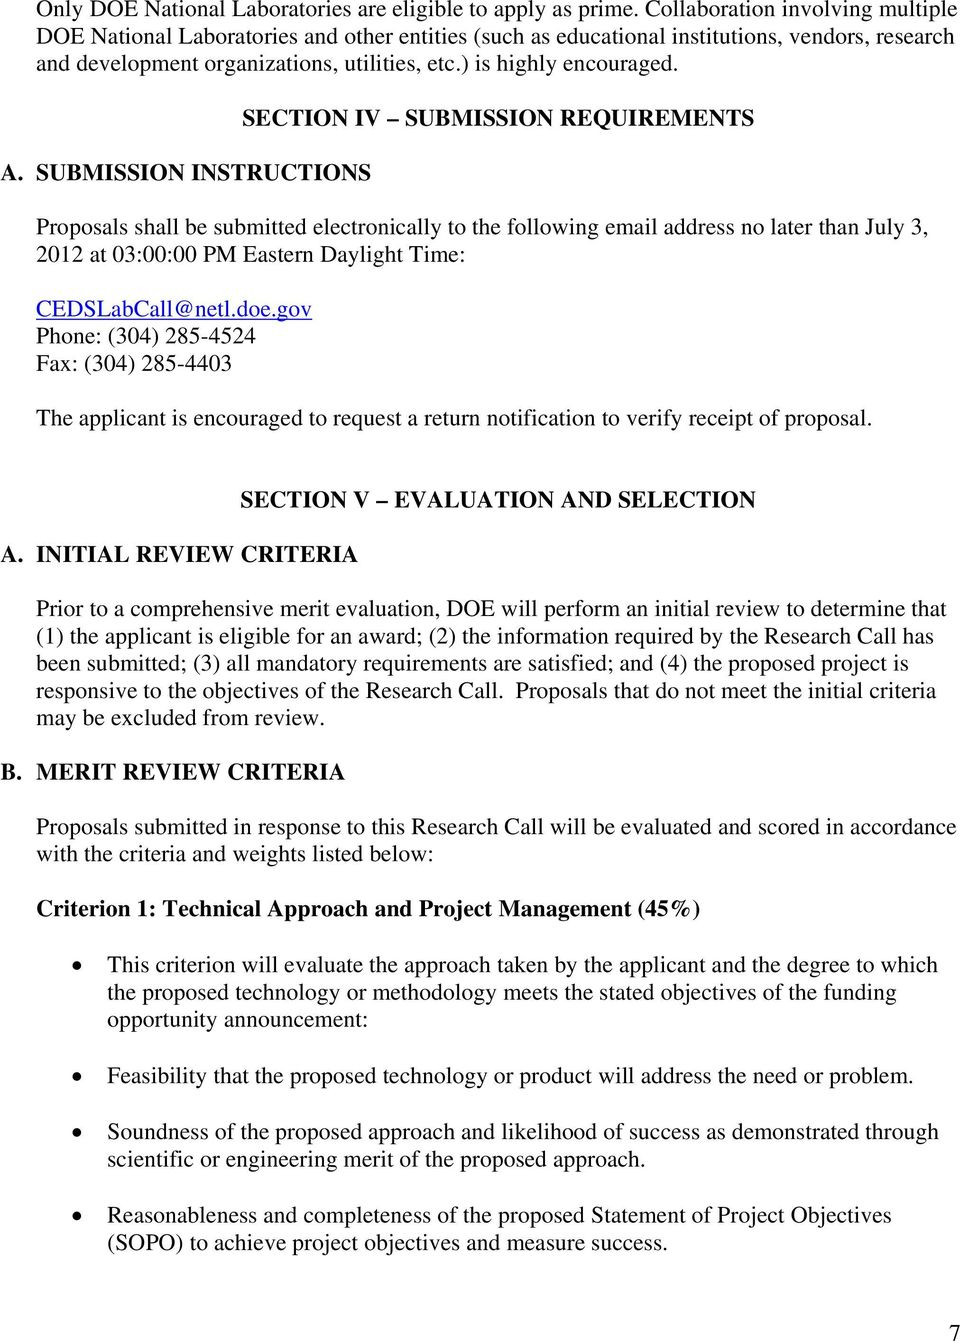 A. SUBMISSION INSTRUCTIONS SECTION IV SUBMISSION REQUIREMENTS Proposals shall be submitted electronically to the following email address no later than July 3, 2012 at 03:00:00 PM Eastern Daylight